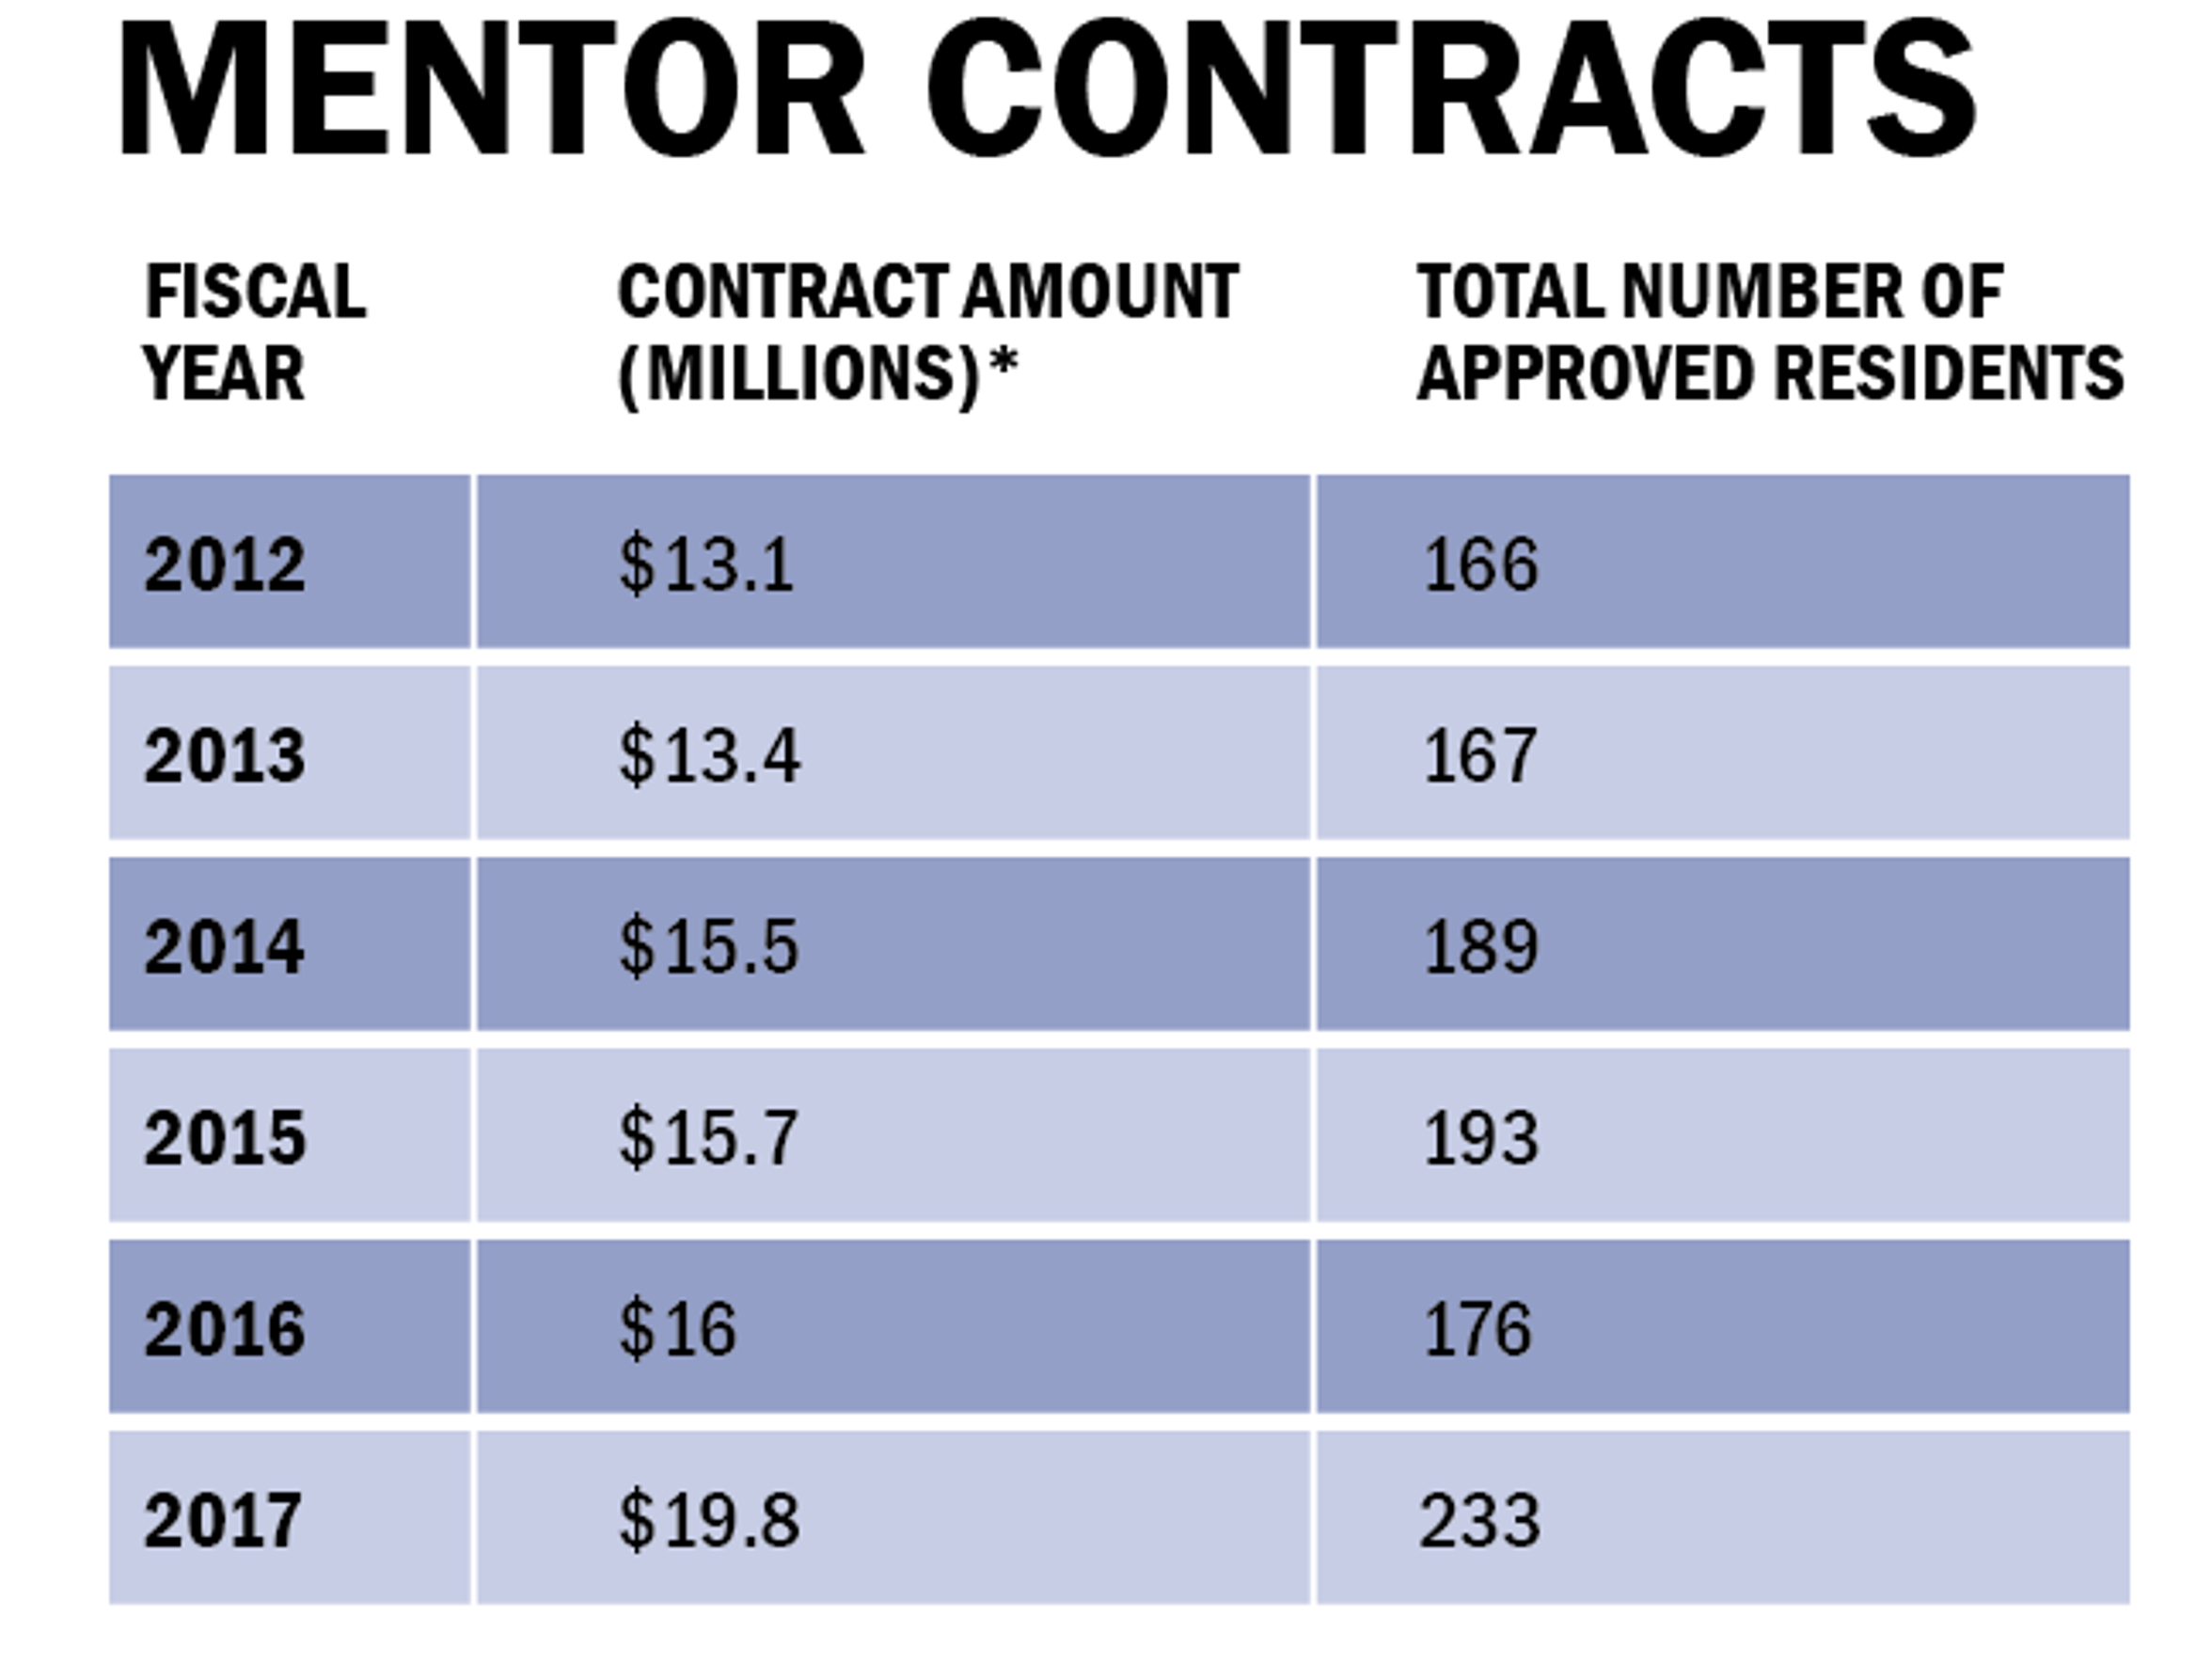 South Carolina Mentor Contracts